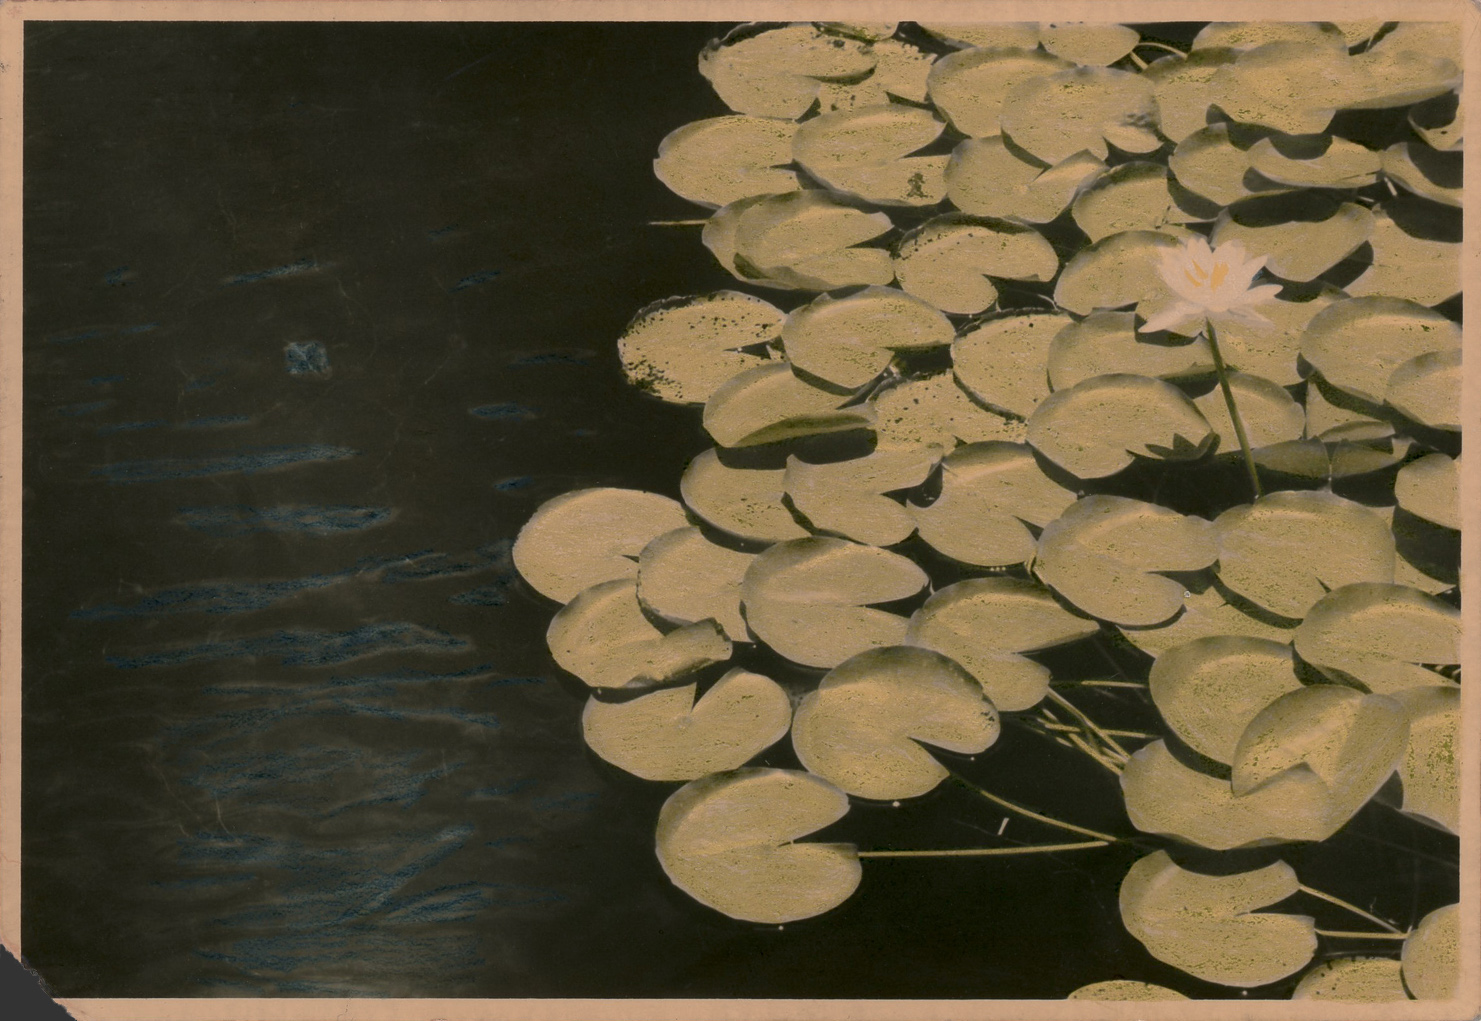 Lily Pads and Flower, Florida